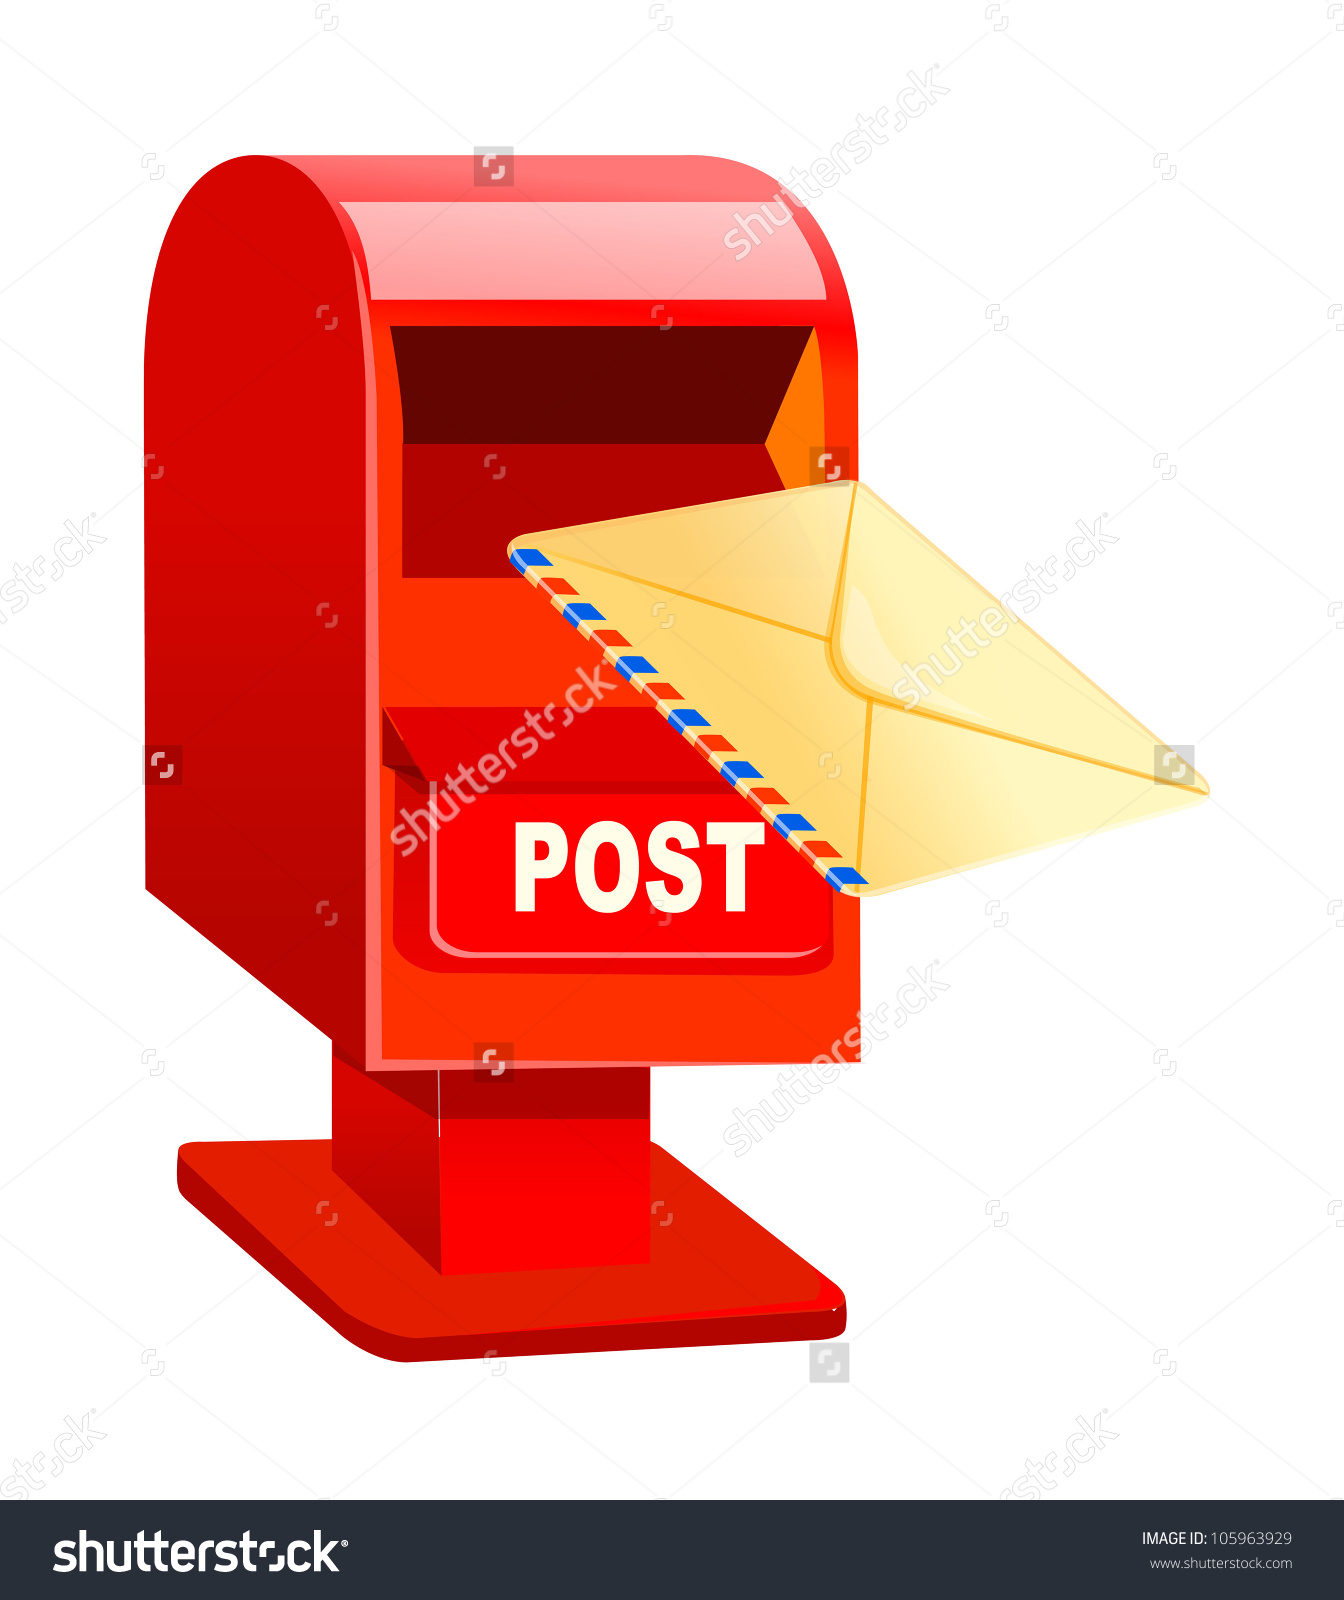 Indian post box clipart.